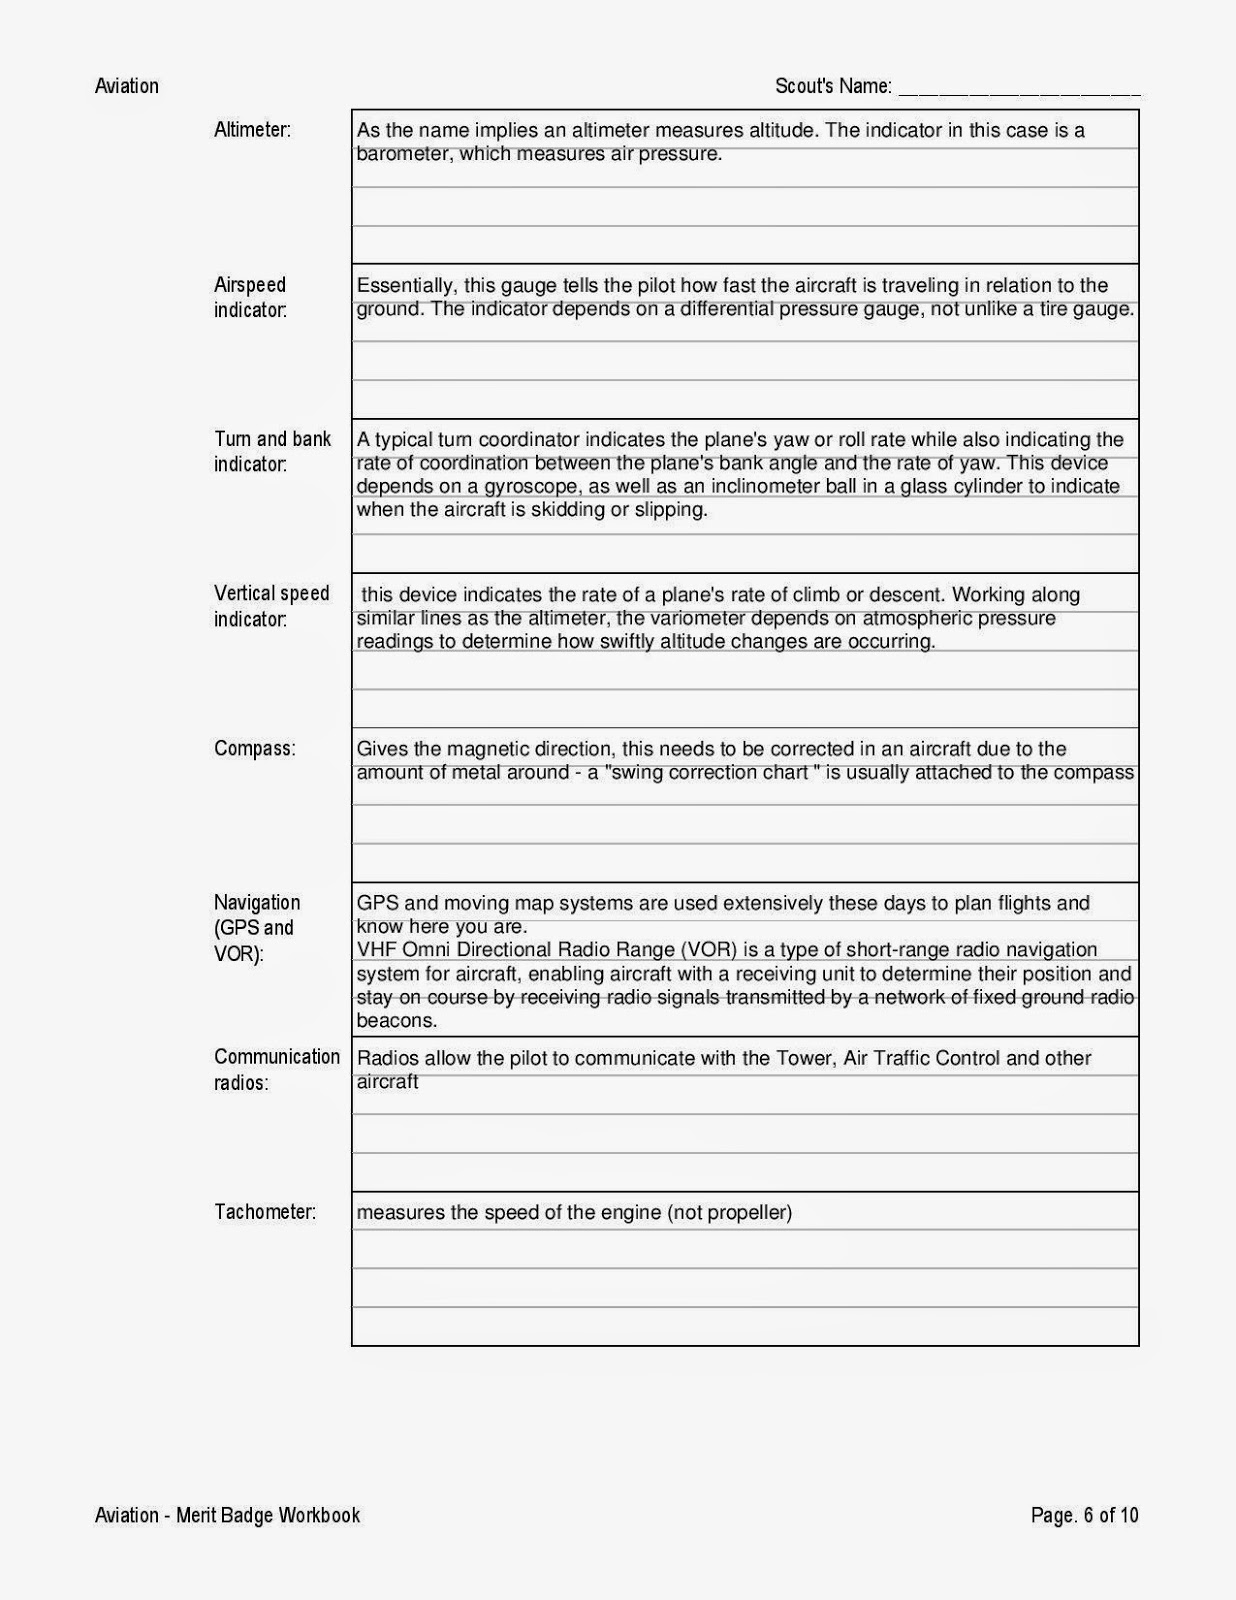 Worksheet Boy Scout Merit Badge Worksheet Answers boy scout troop 107 greensboro nc aviation merit badge workbook here are some sample answers